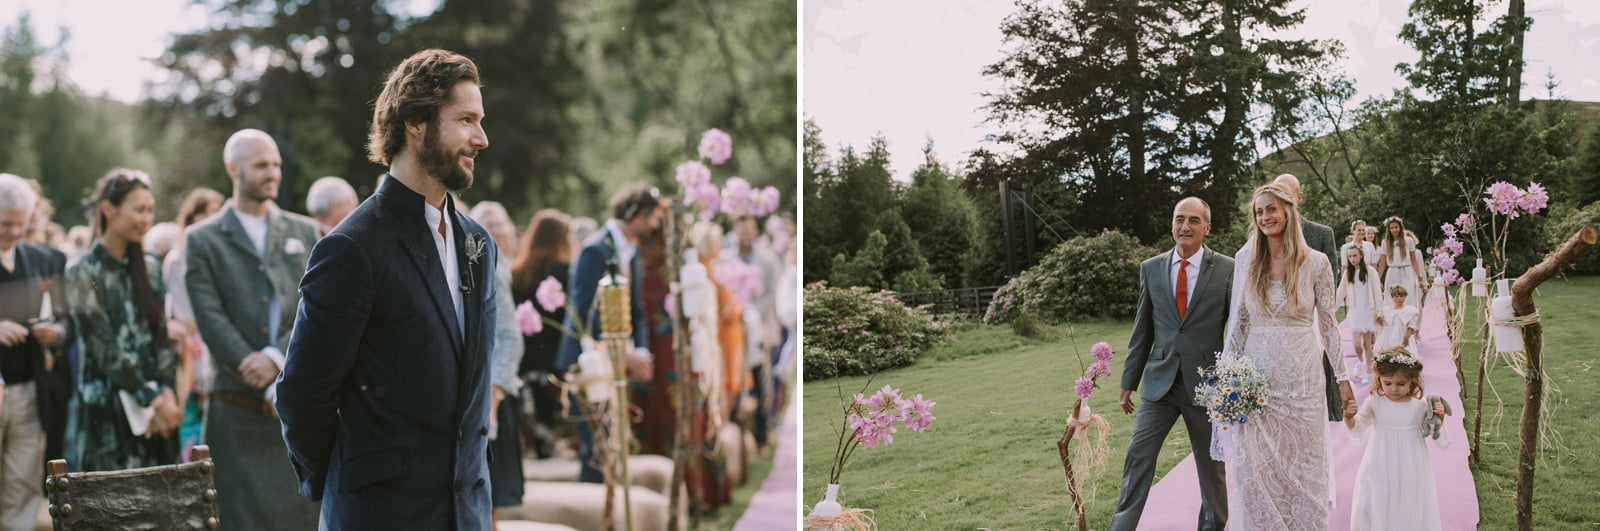 rustic scotland wedding